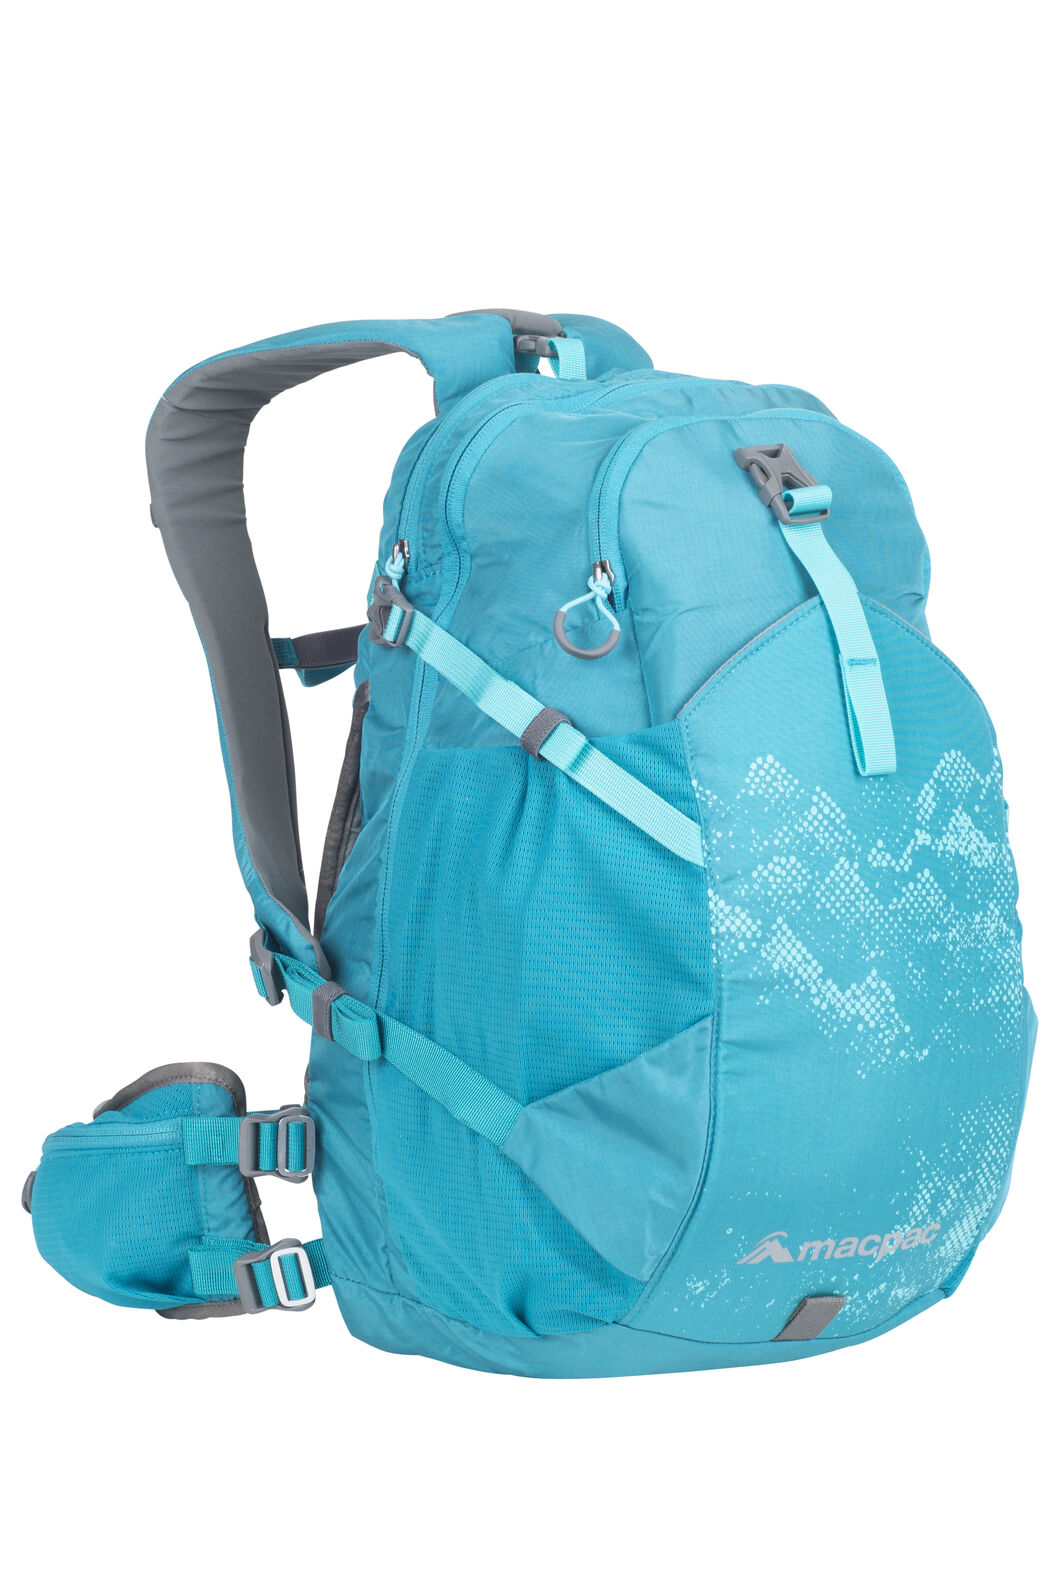 Macpac Mountain Bike 18L Pack, Enamel Blue, hi-res